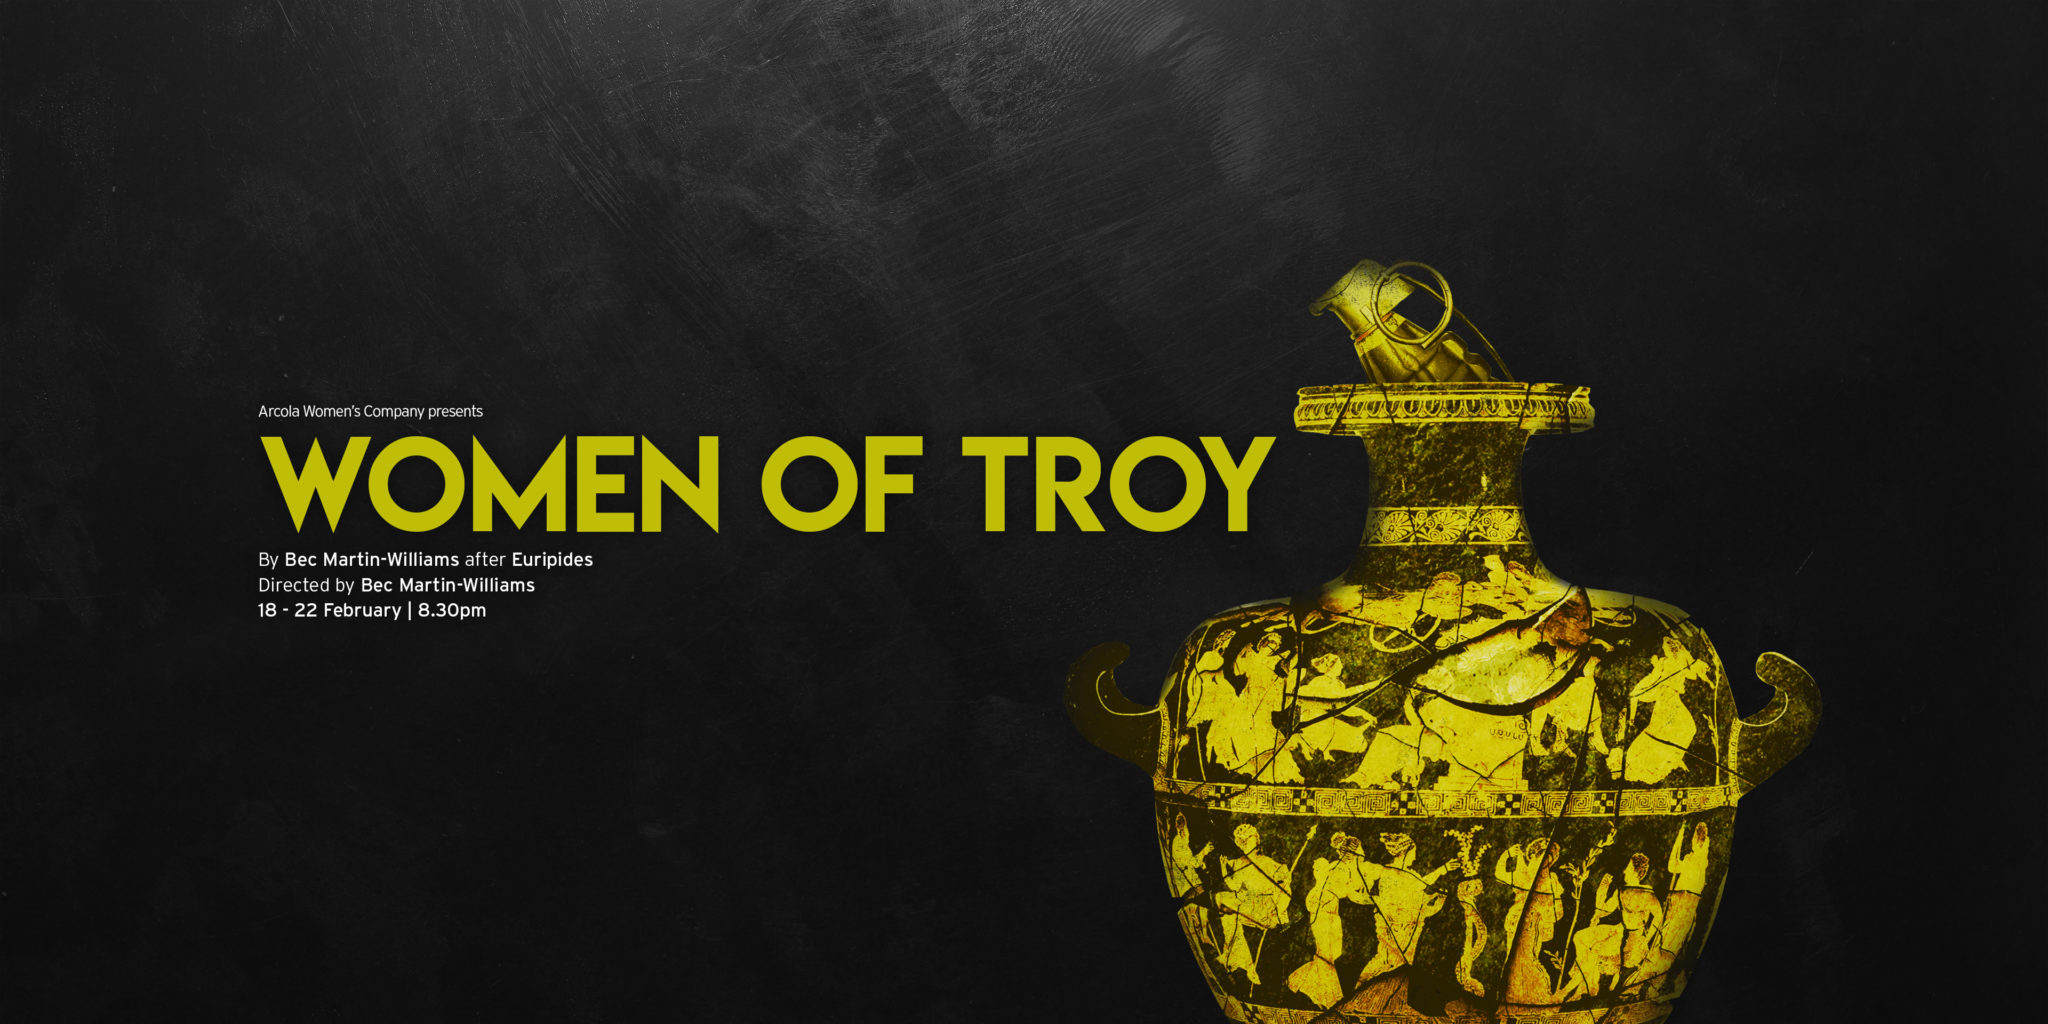 Women of Troy